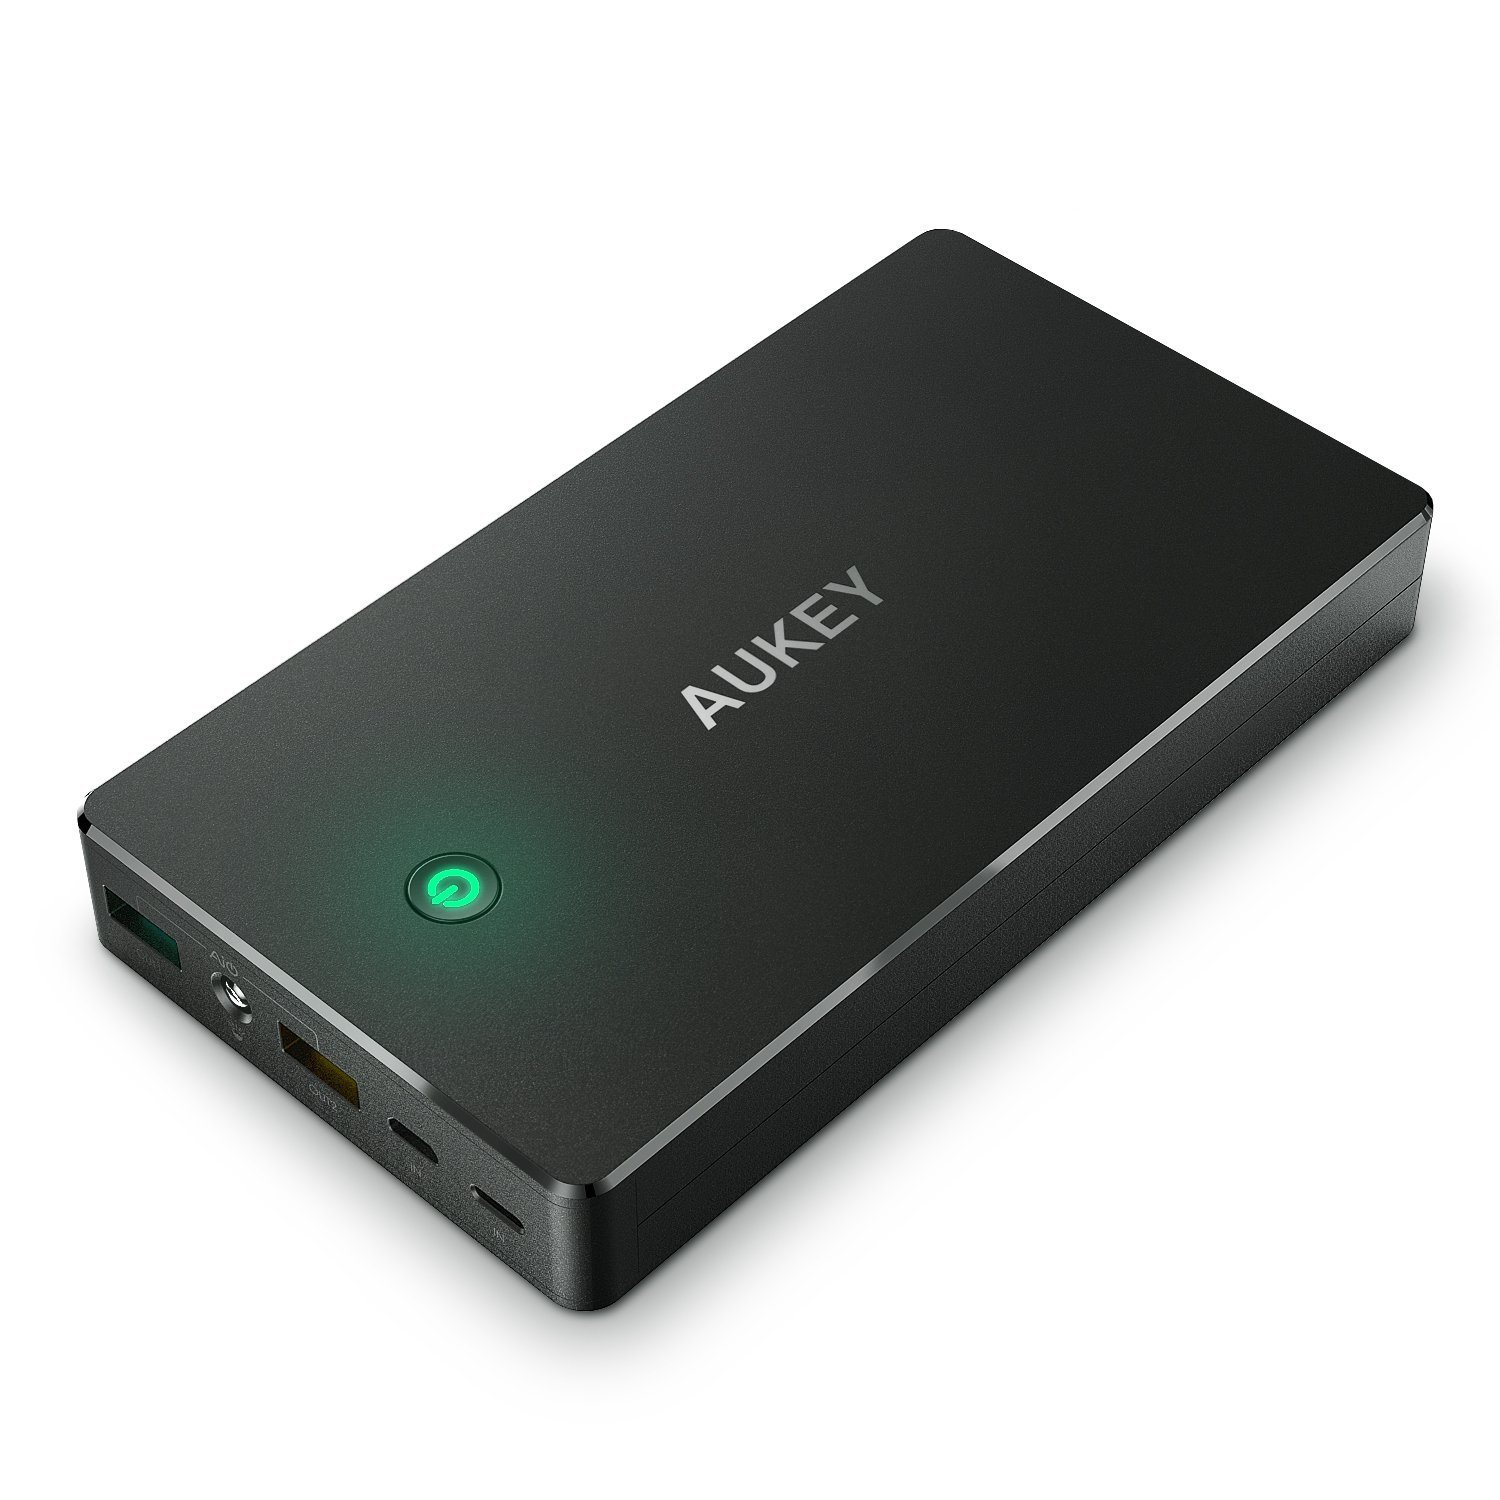 AUKEY 20000 mAh Quick Charge 2.0 Power Bank with 20 cm Micro USB Cable